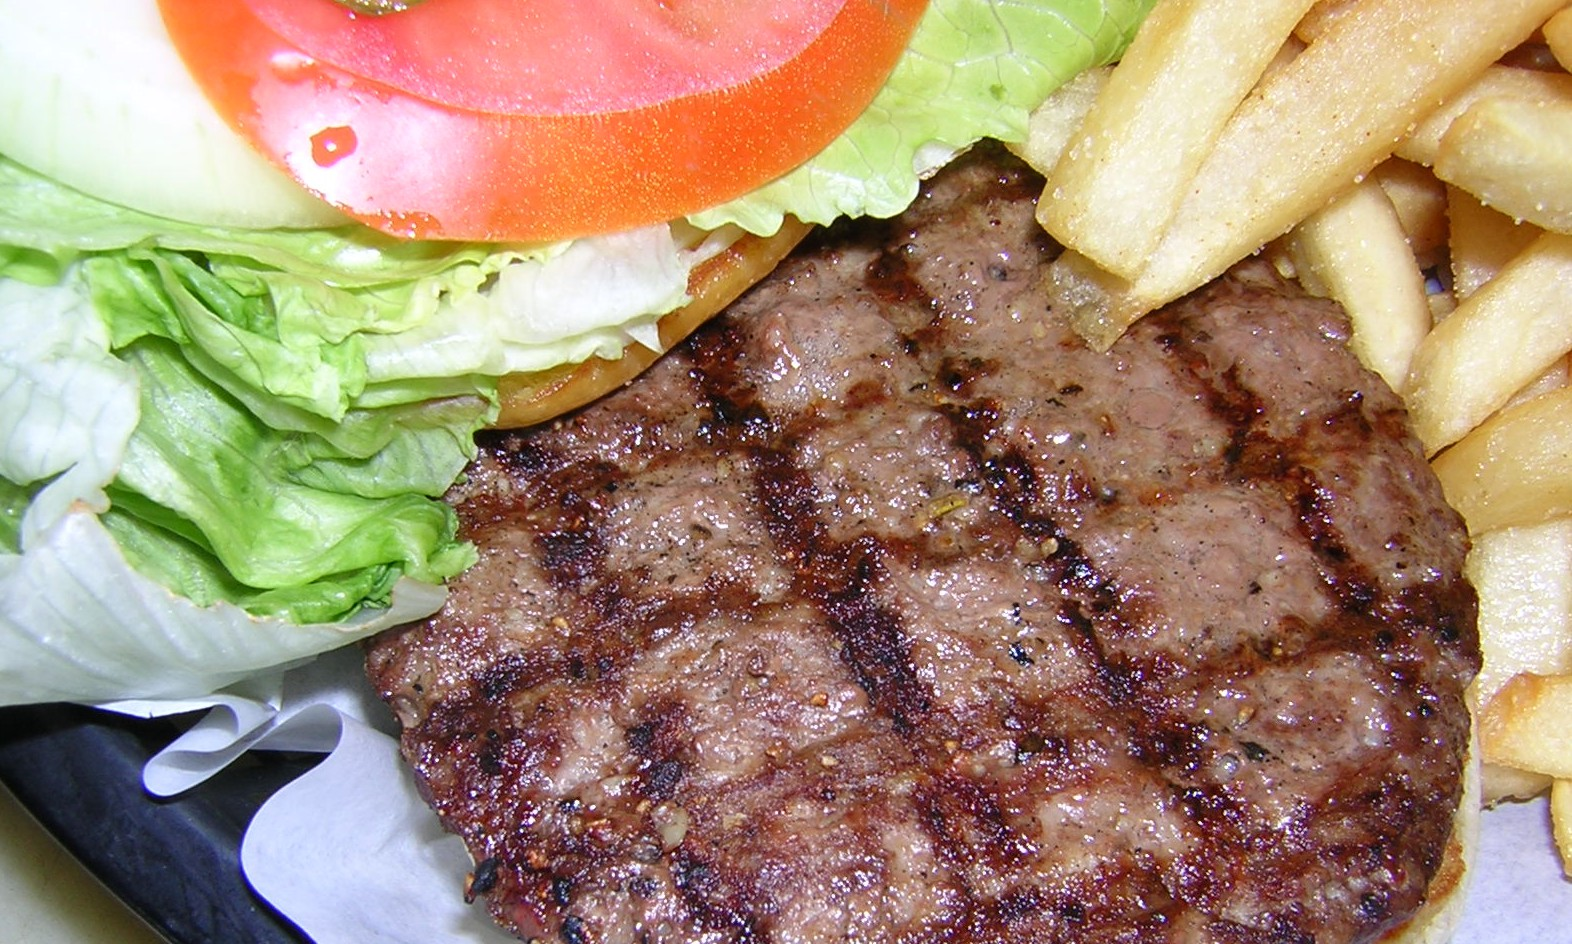 burger-tomoto-lettuce-french-fries